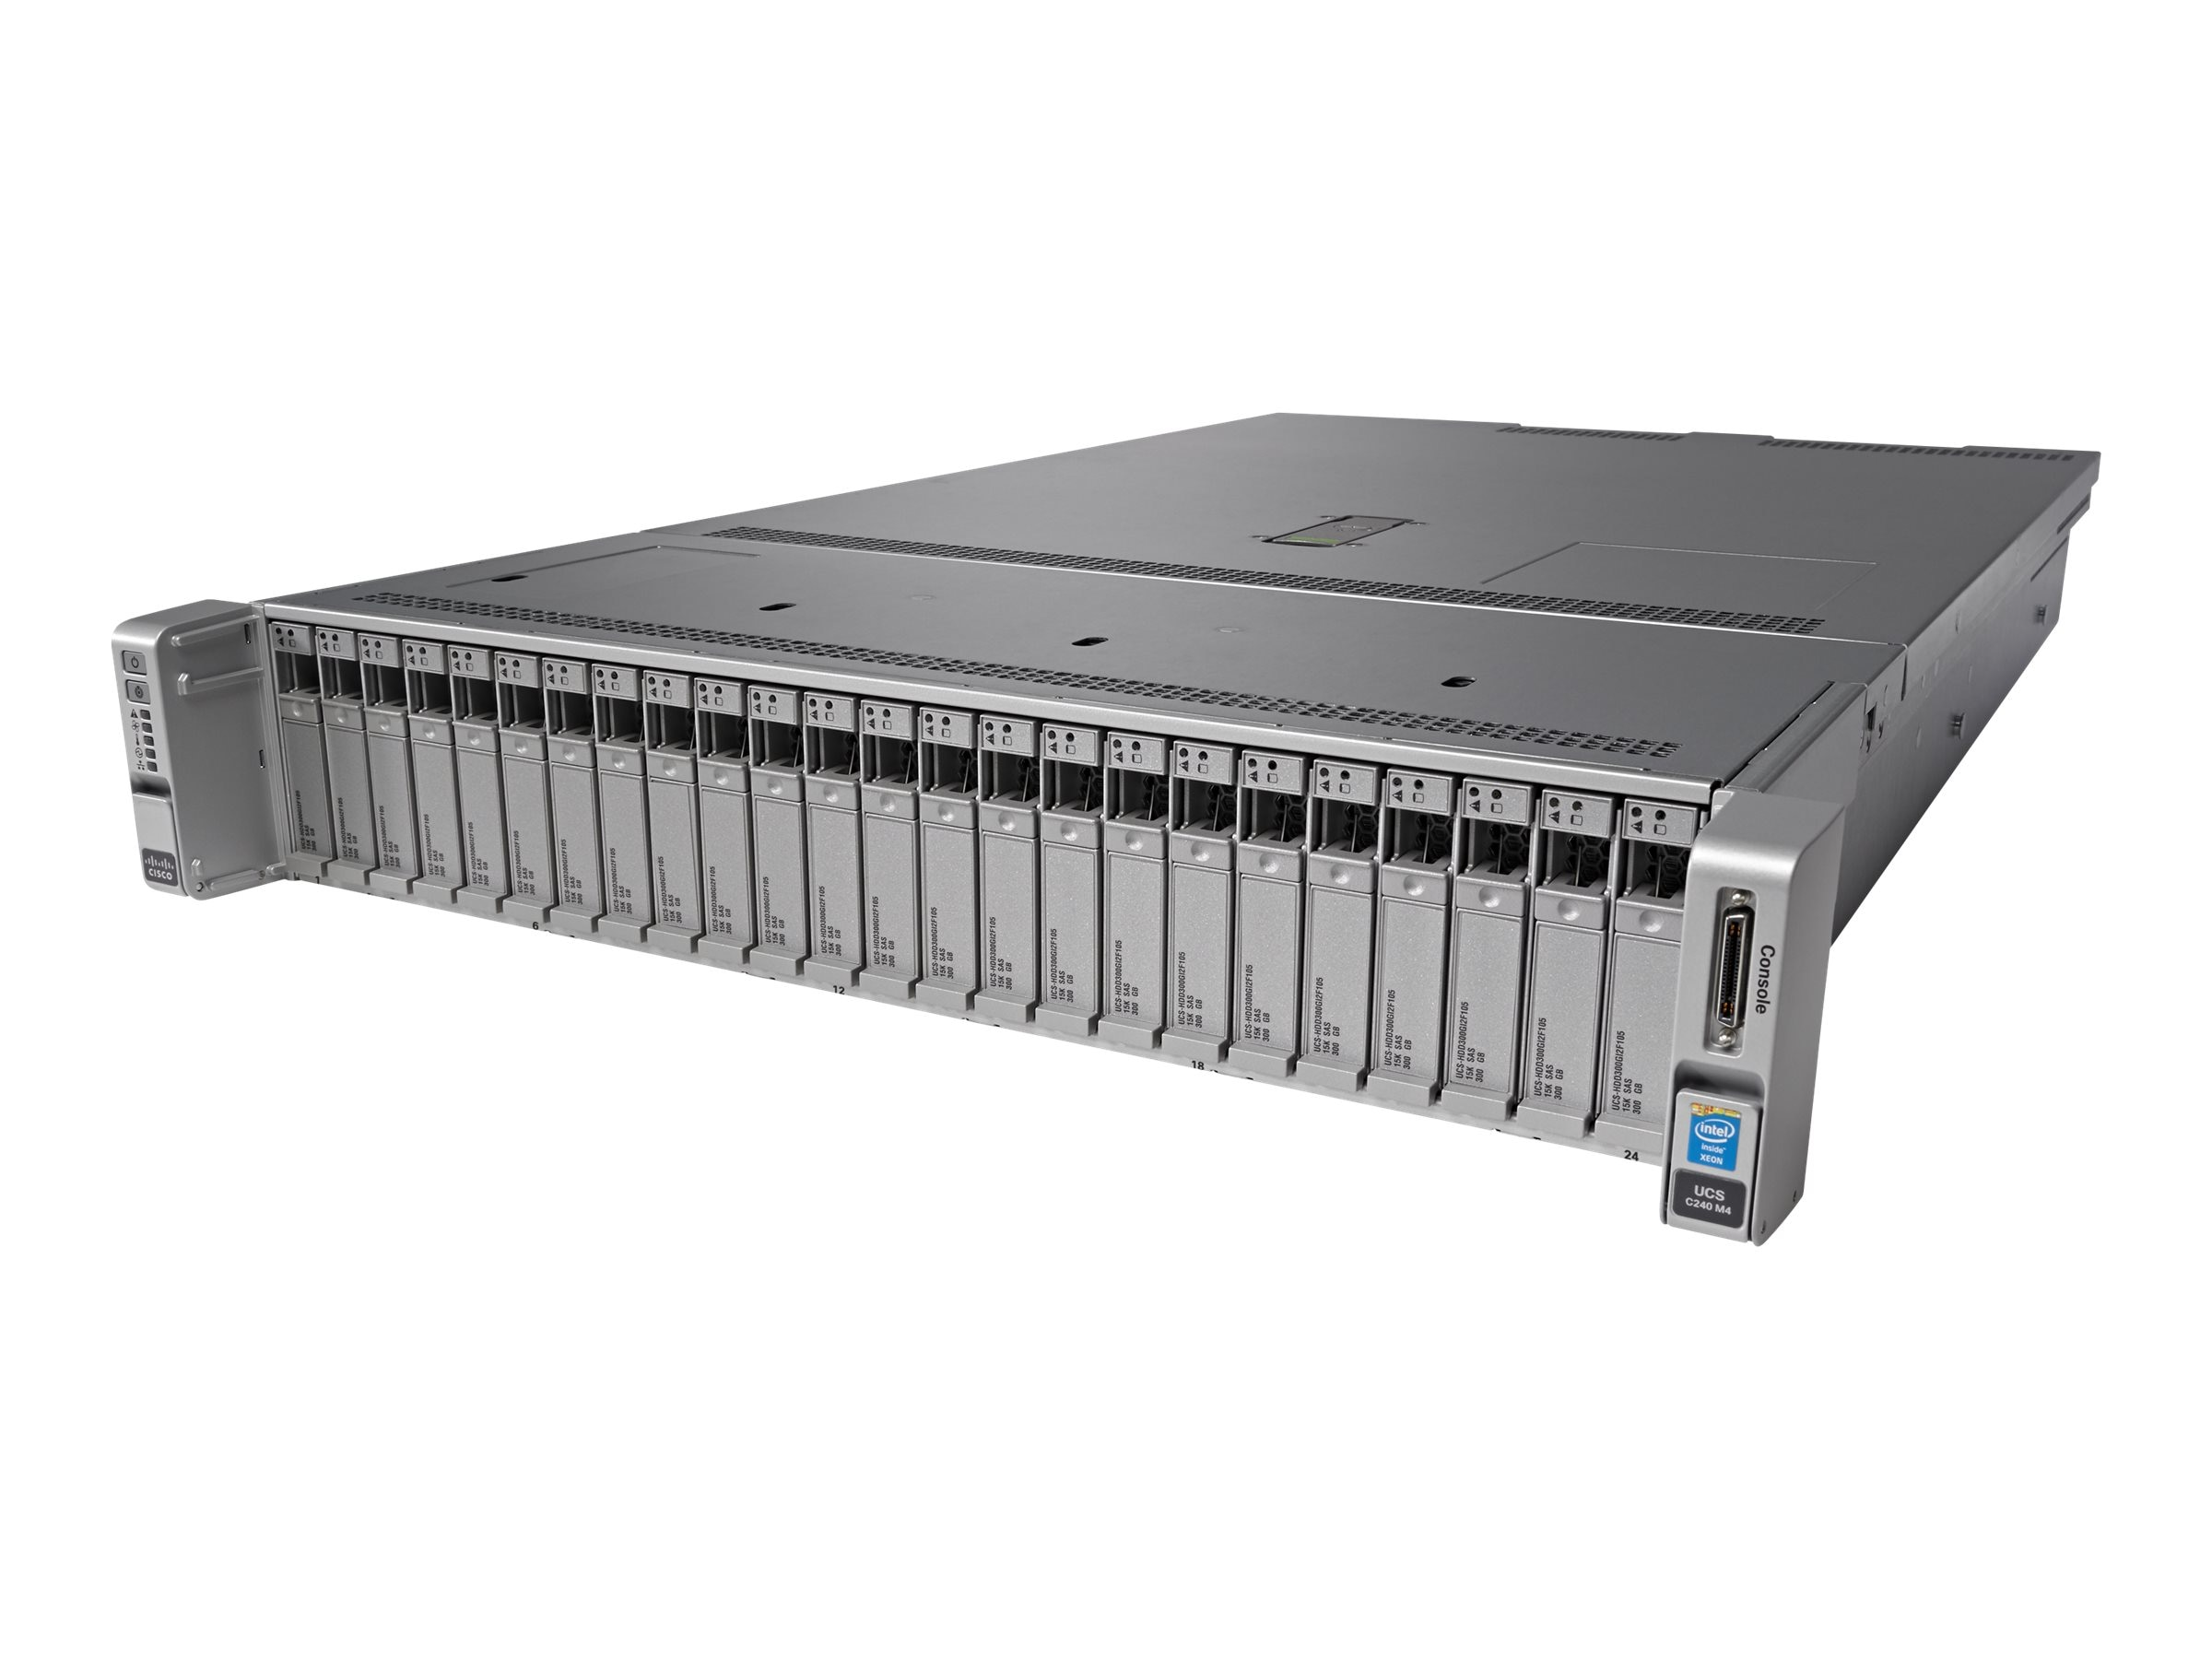 Cisco UCS SP C240 M4SX Freq1 (2x)Xeon E5-2643 v4 256GB VIC122